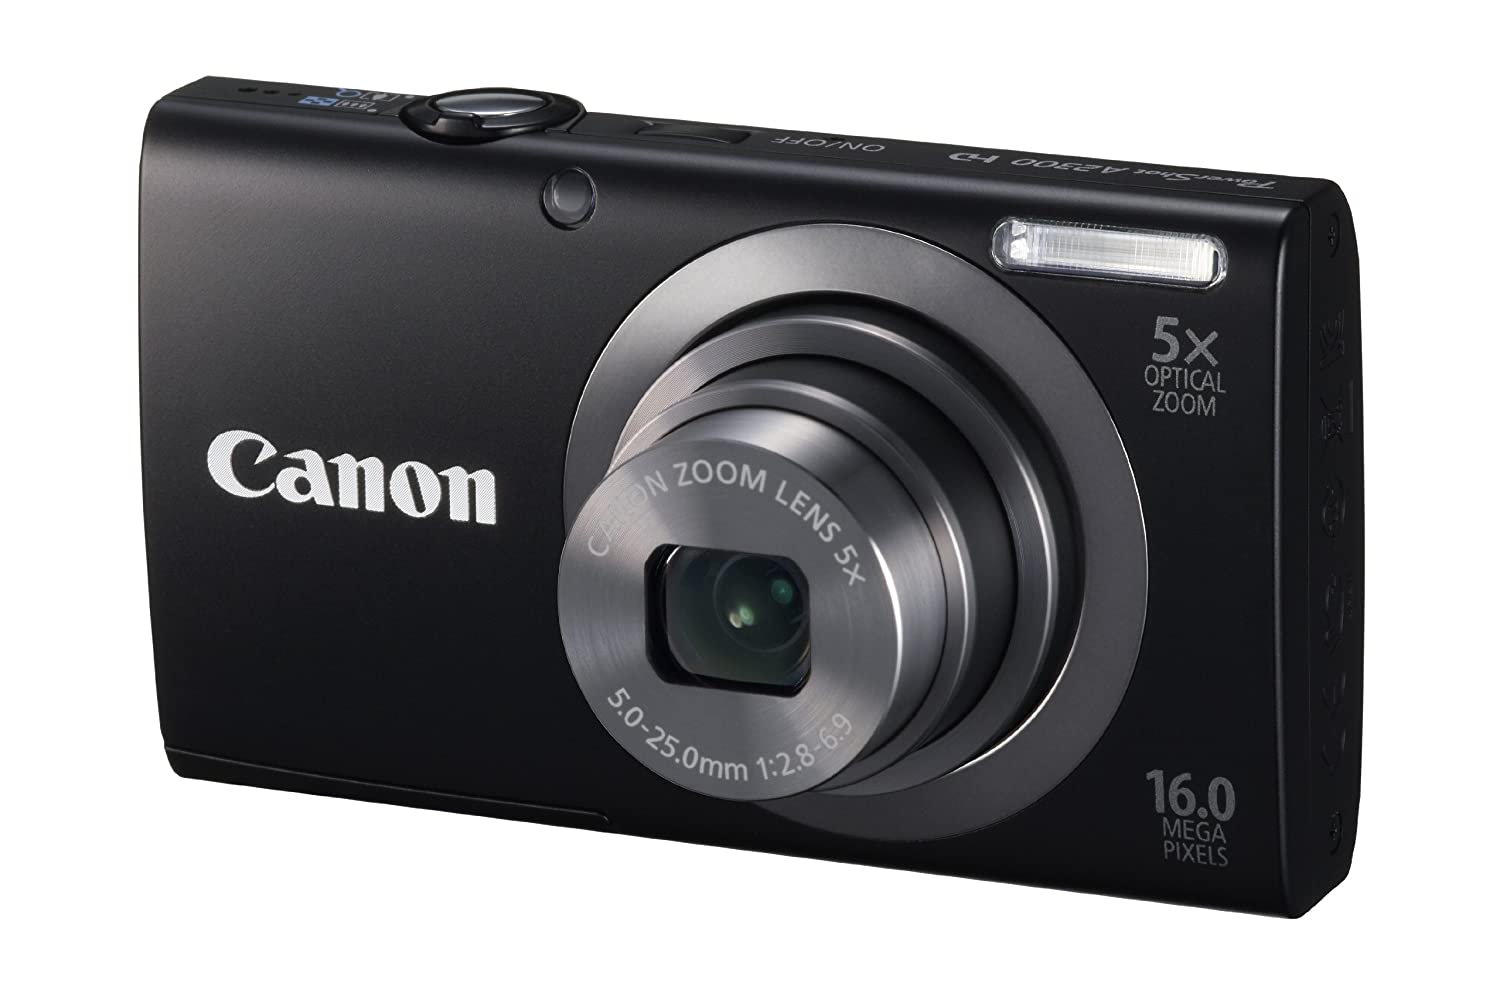 Canon PowerShot A2300 IS 16.0 MP Digital Camera with 5x Wide-Angle Lens,720p HD Video Recording (Black)